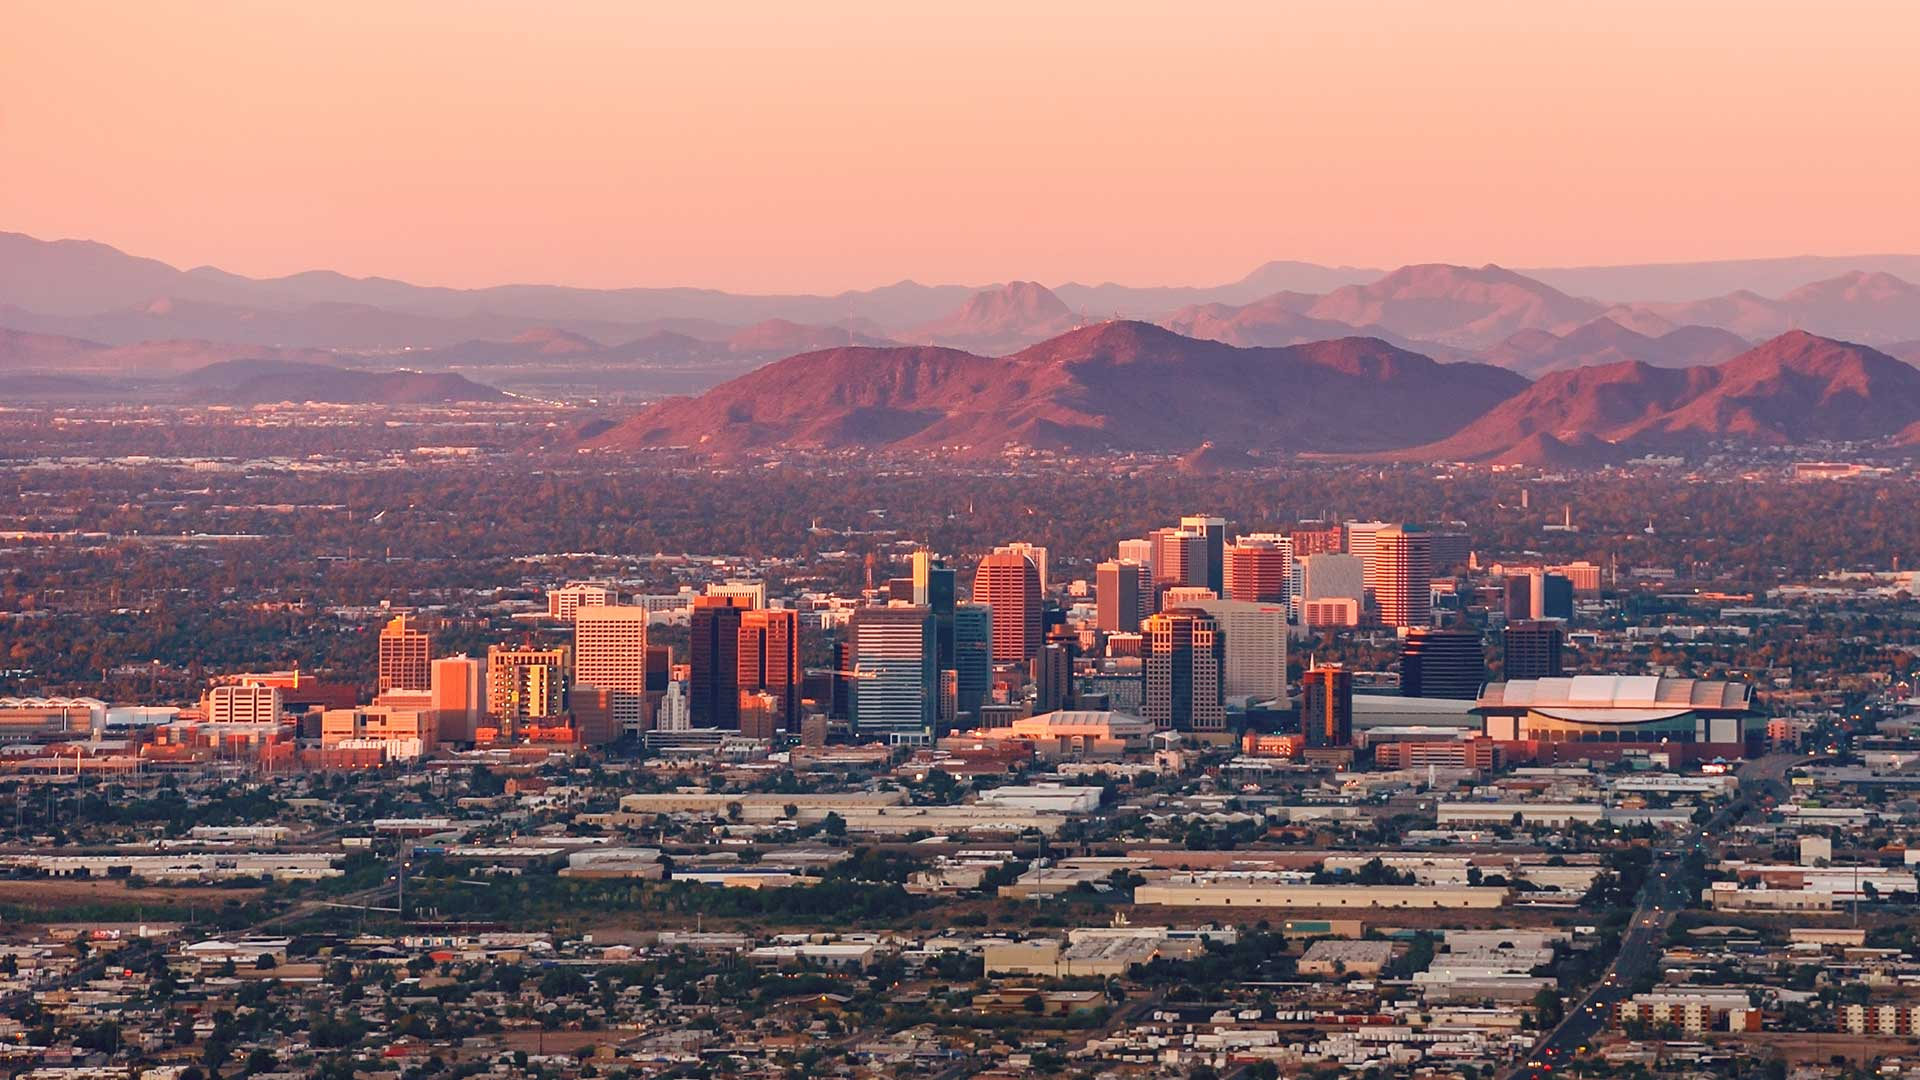 Panorama to illustrate dating in phoenix